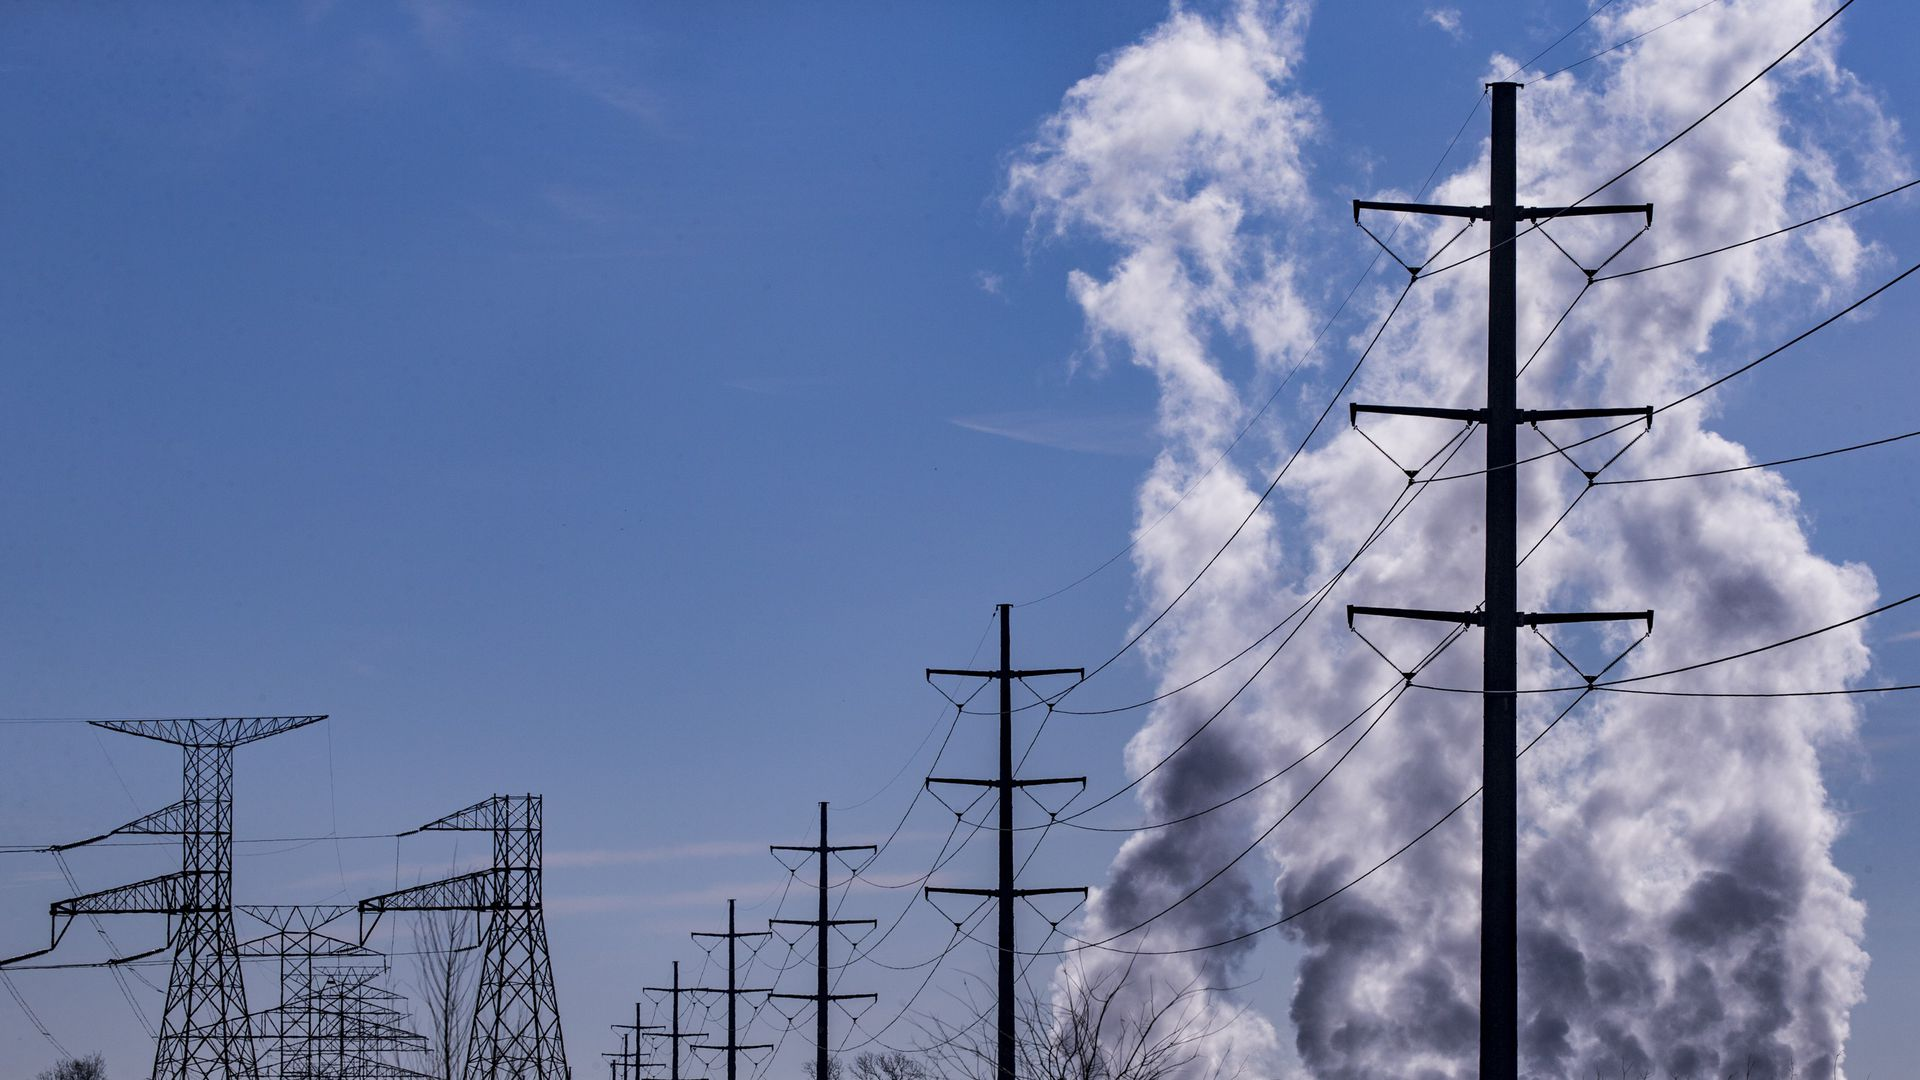 A natural gas power plant outside Dallas. Photo: Samuel Corum/Anadolu Agency via Getty Images